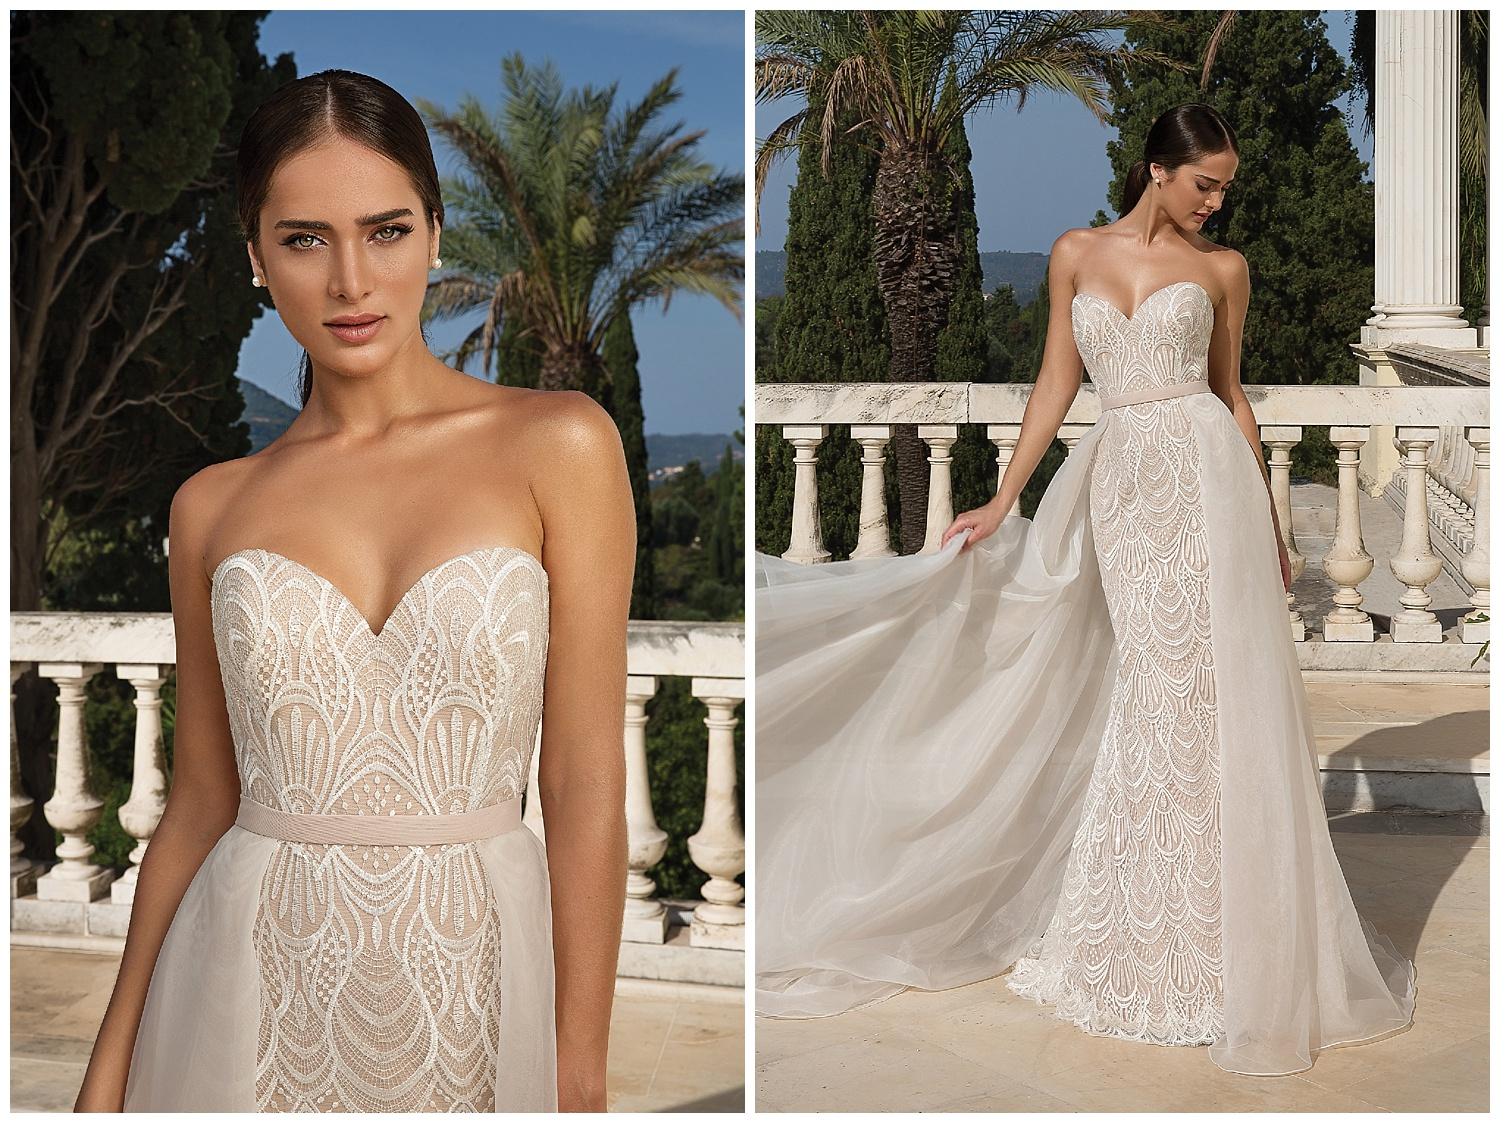 https://www.dropbox.com/preview/KRISTINE%20BLOG%20FILES%20AND%20IMAGES/Justin%20Alexander%20fall%202019%20bridal%20collection%20-stomped/justin-alexander-88085-strapless-lace-gown-epiphany-boutique-carmel-california.jpg